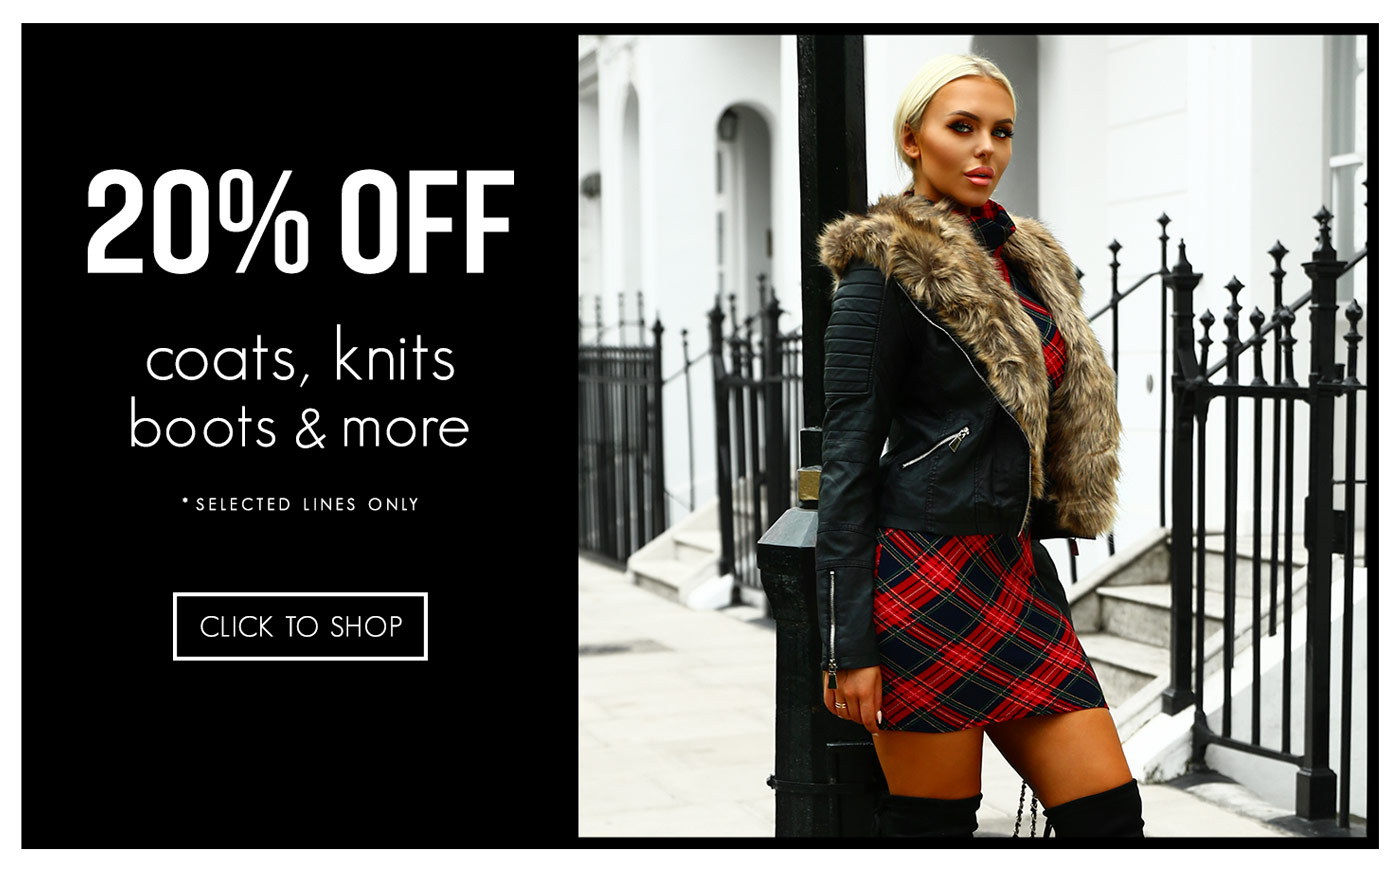 Pink Boutique: 20% off coats, knits, boots and more